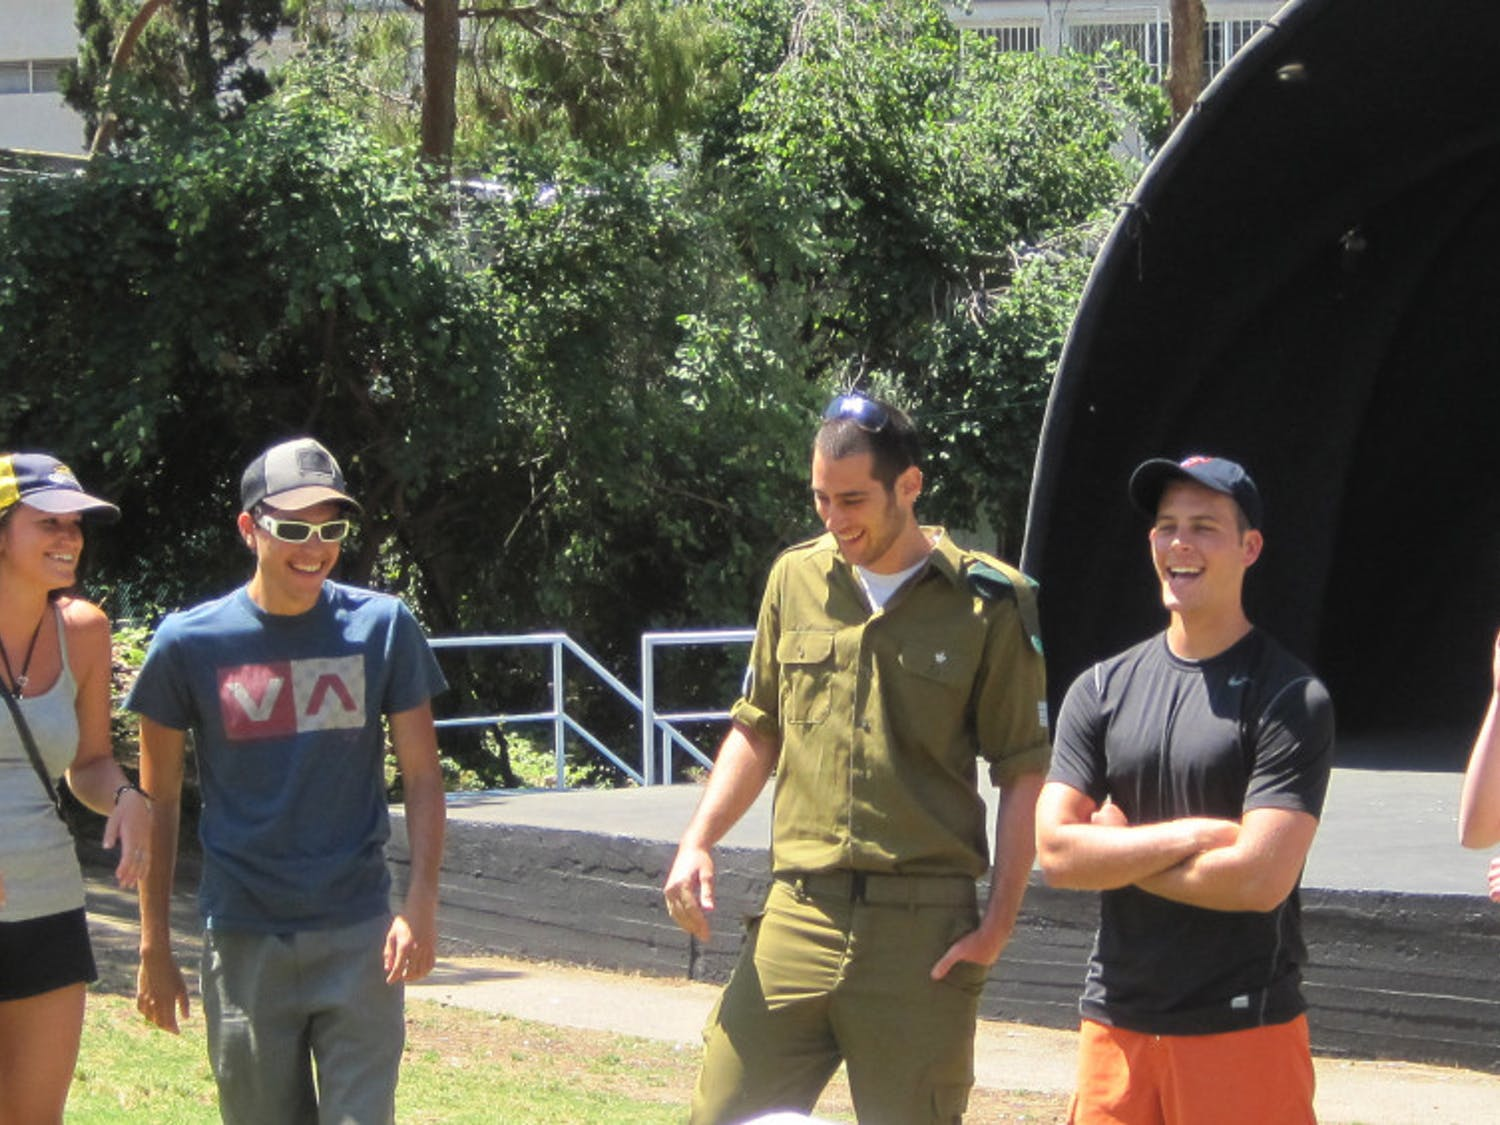 UF students on a Hillel Birthright trip meet the Israeli soldier who will accompany them during their trip.